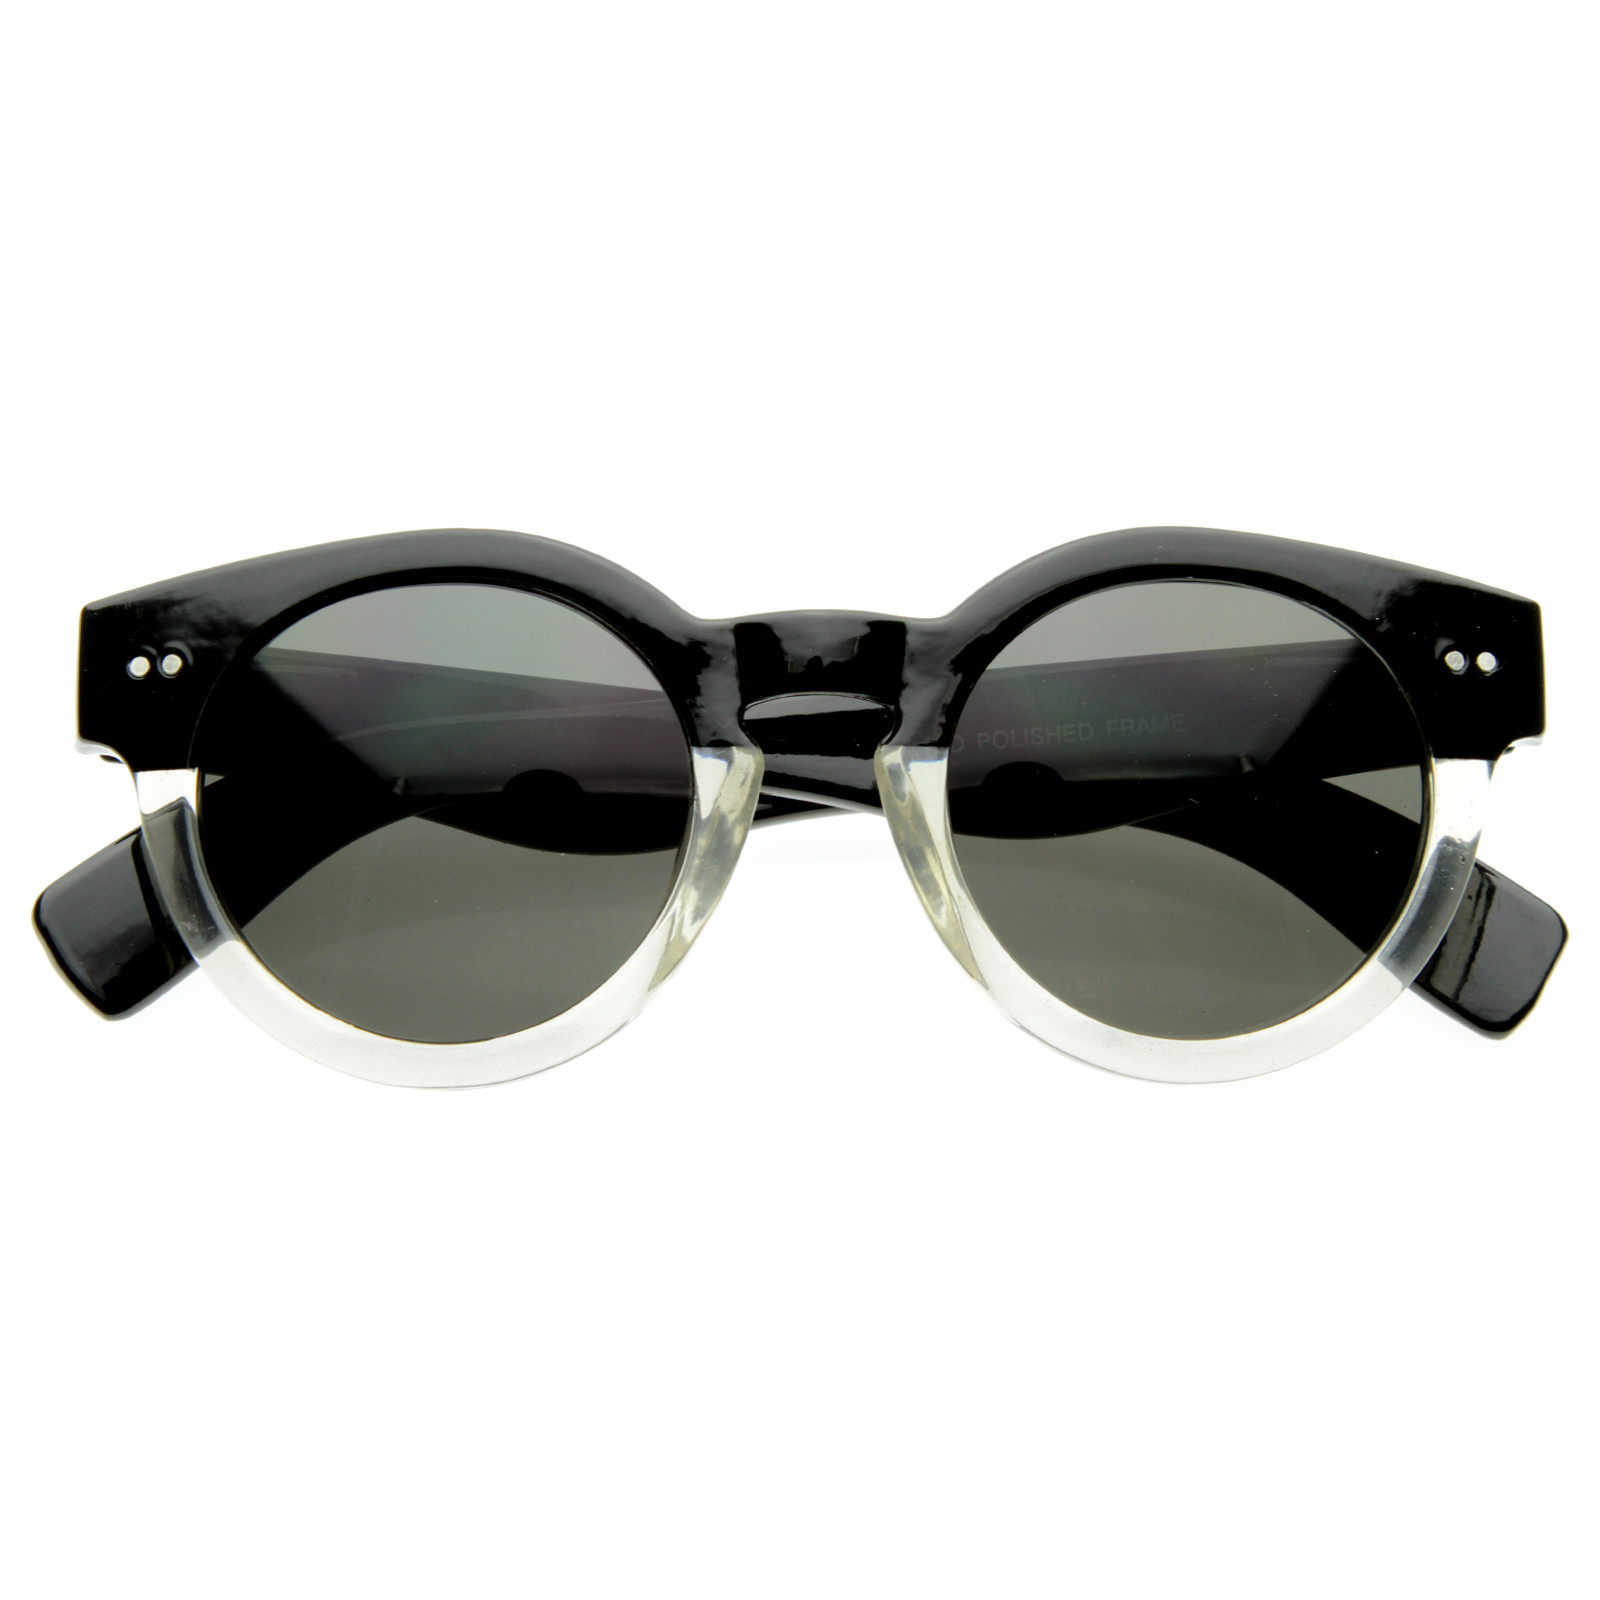 Vintage Fashion Inspired Bold Circle Round Sunglasses